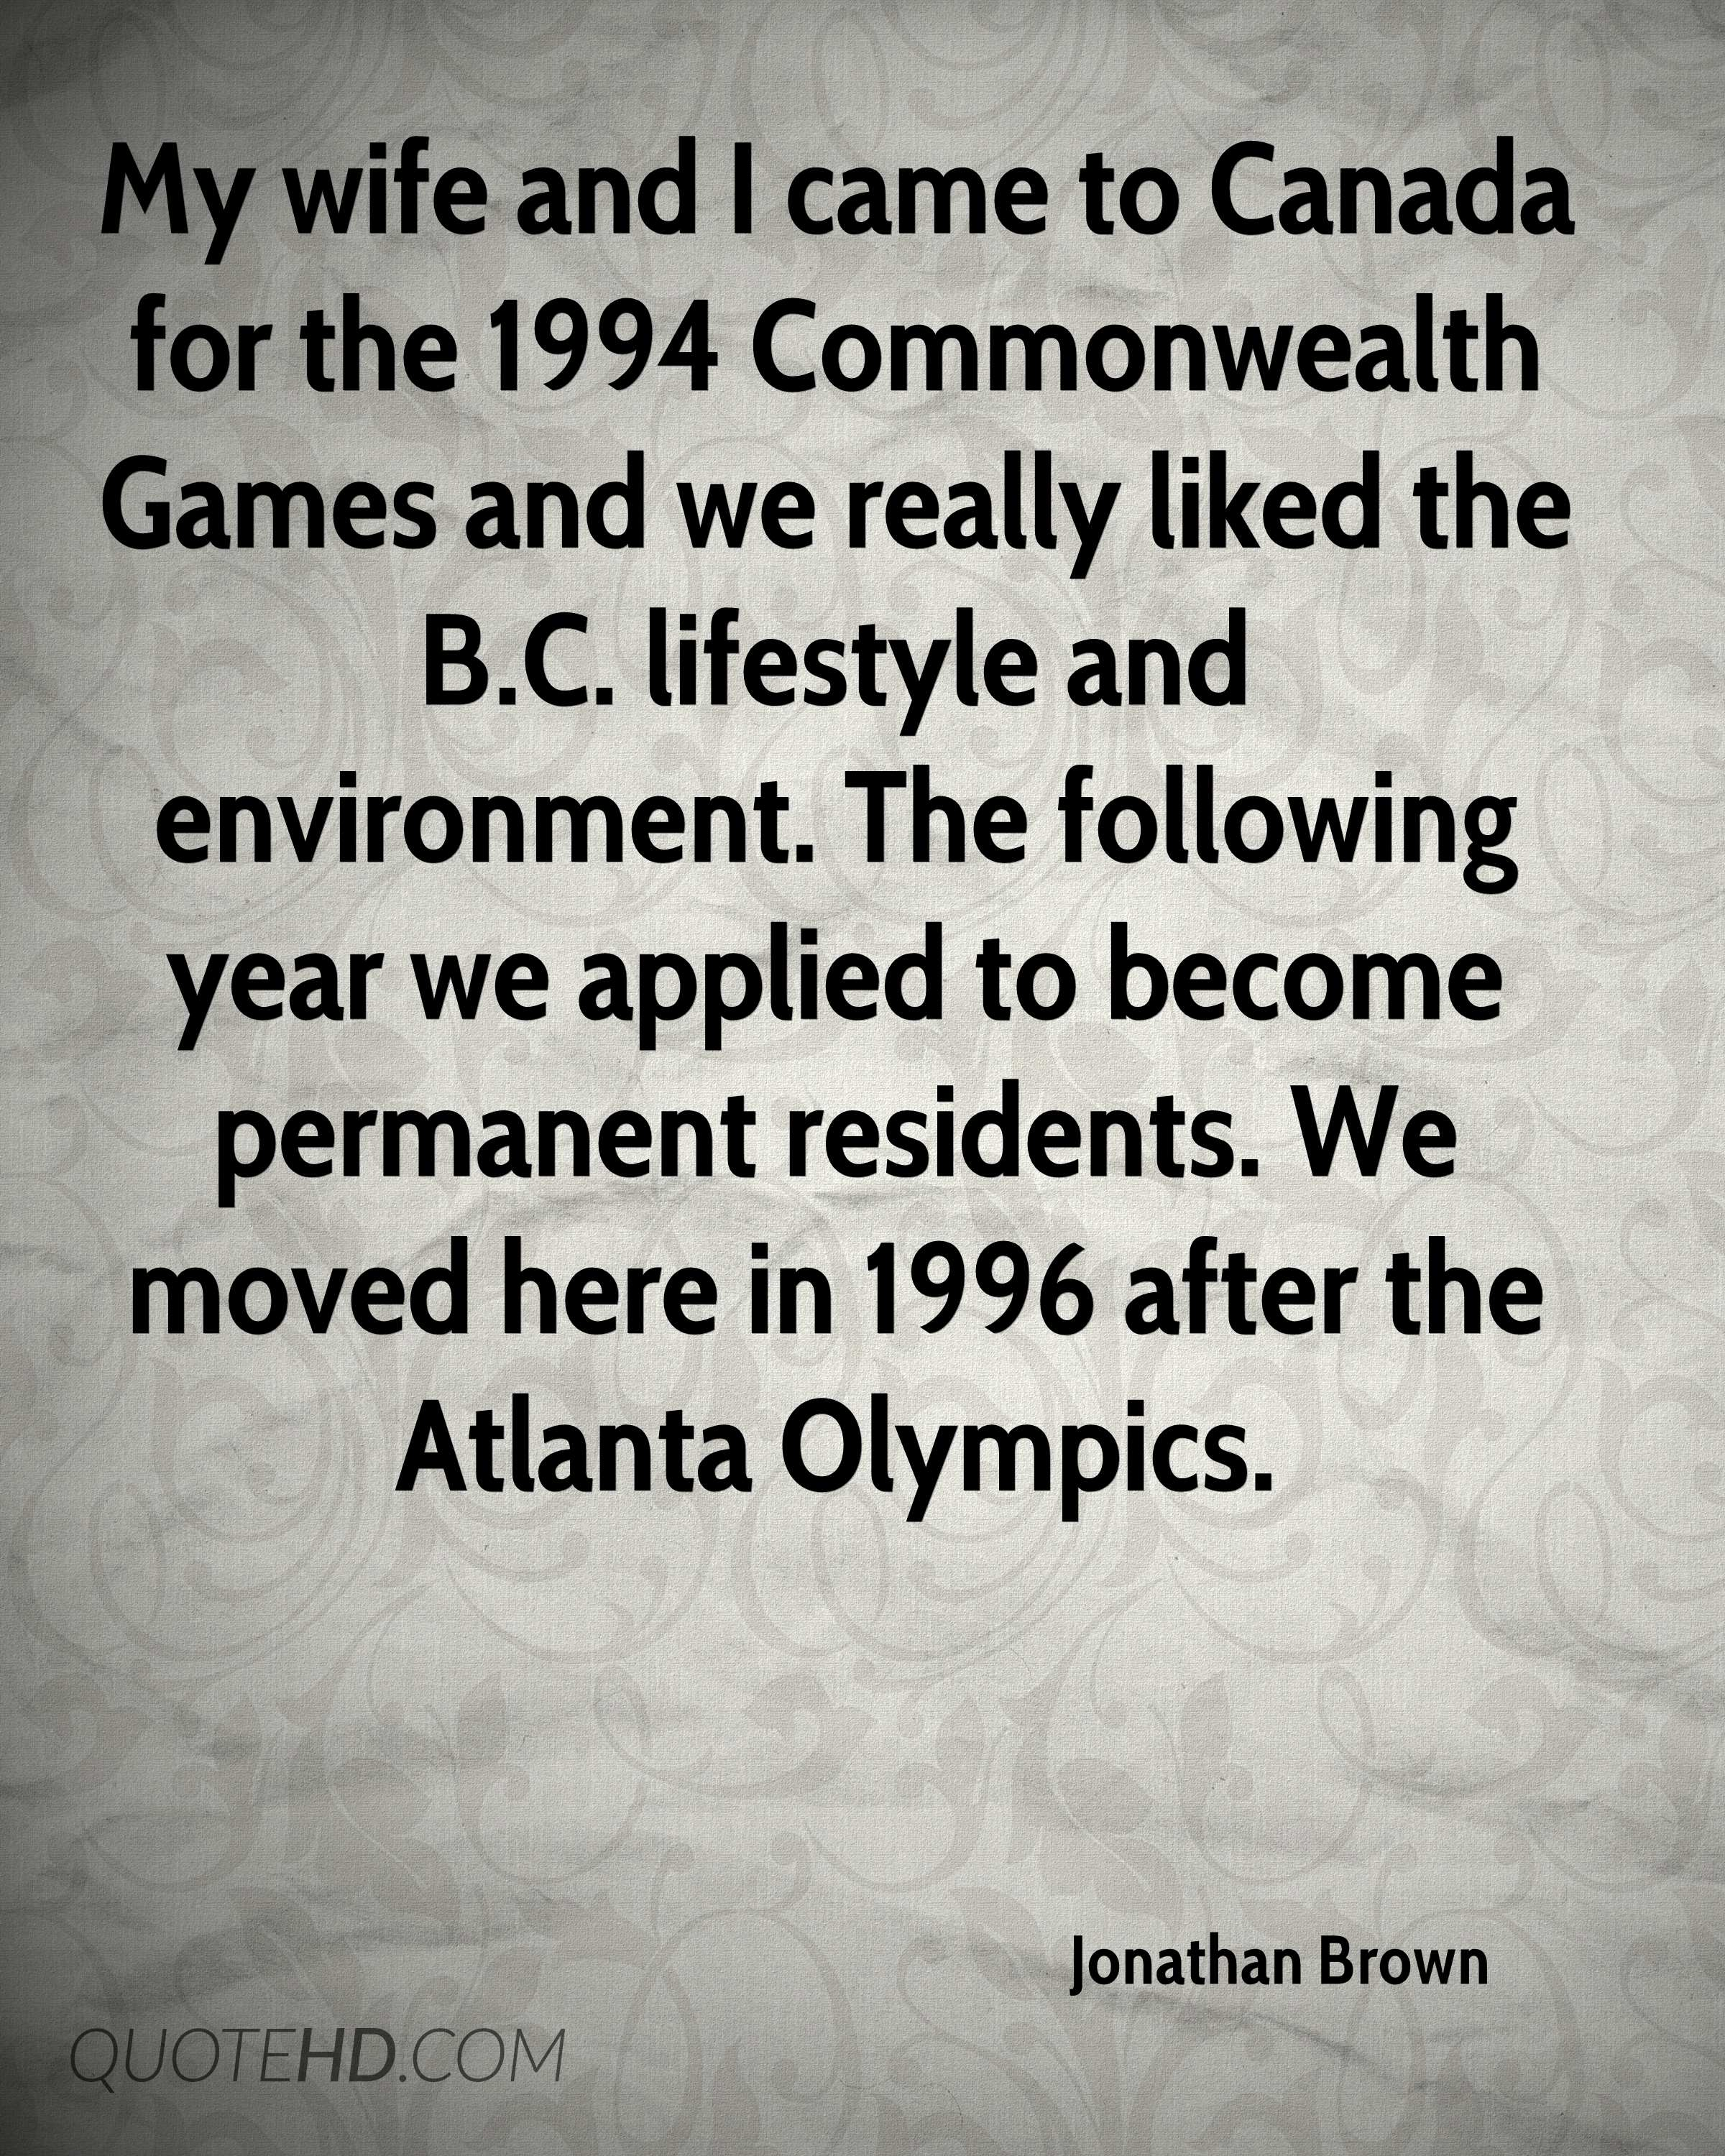 My wife and I came to Canada for the 1994 Commonwealth Games and we really liked the B.C. lifestyle and environment. The following year we applied to become permanent residents. We moved here in 1996 after the Atlanta Olympics.